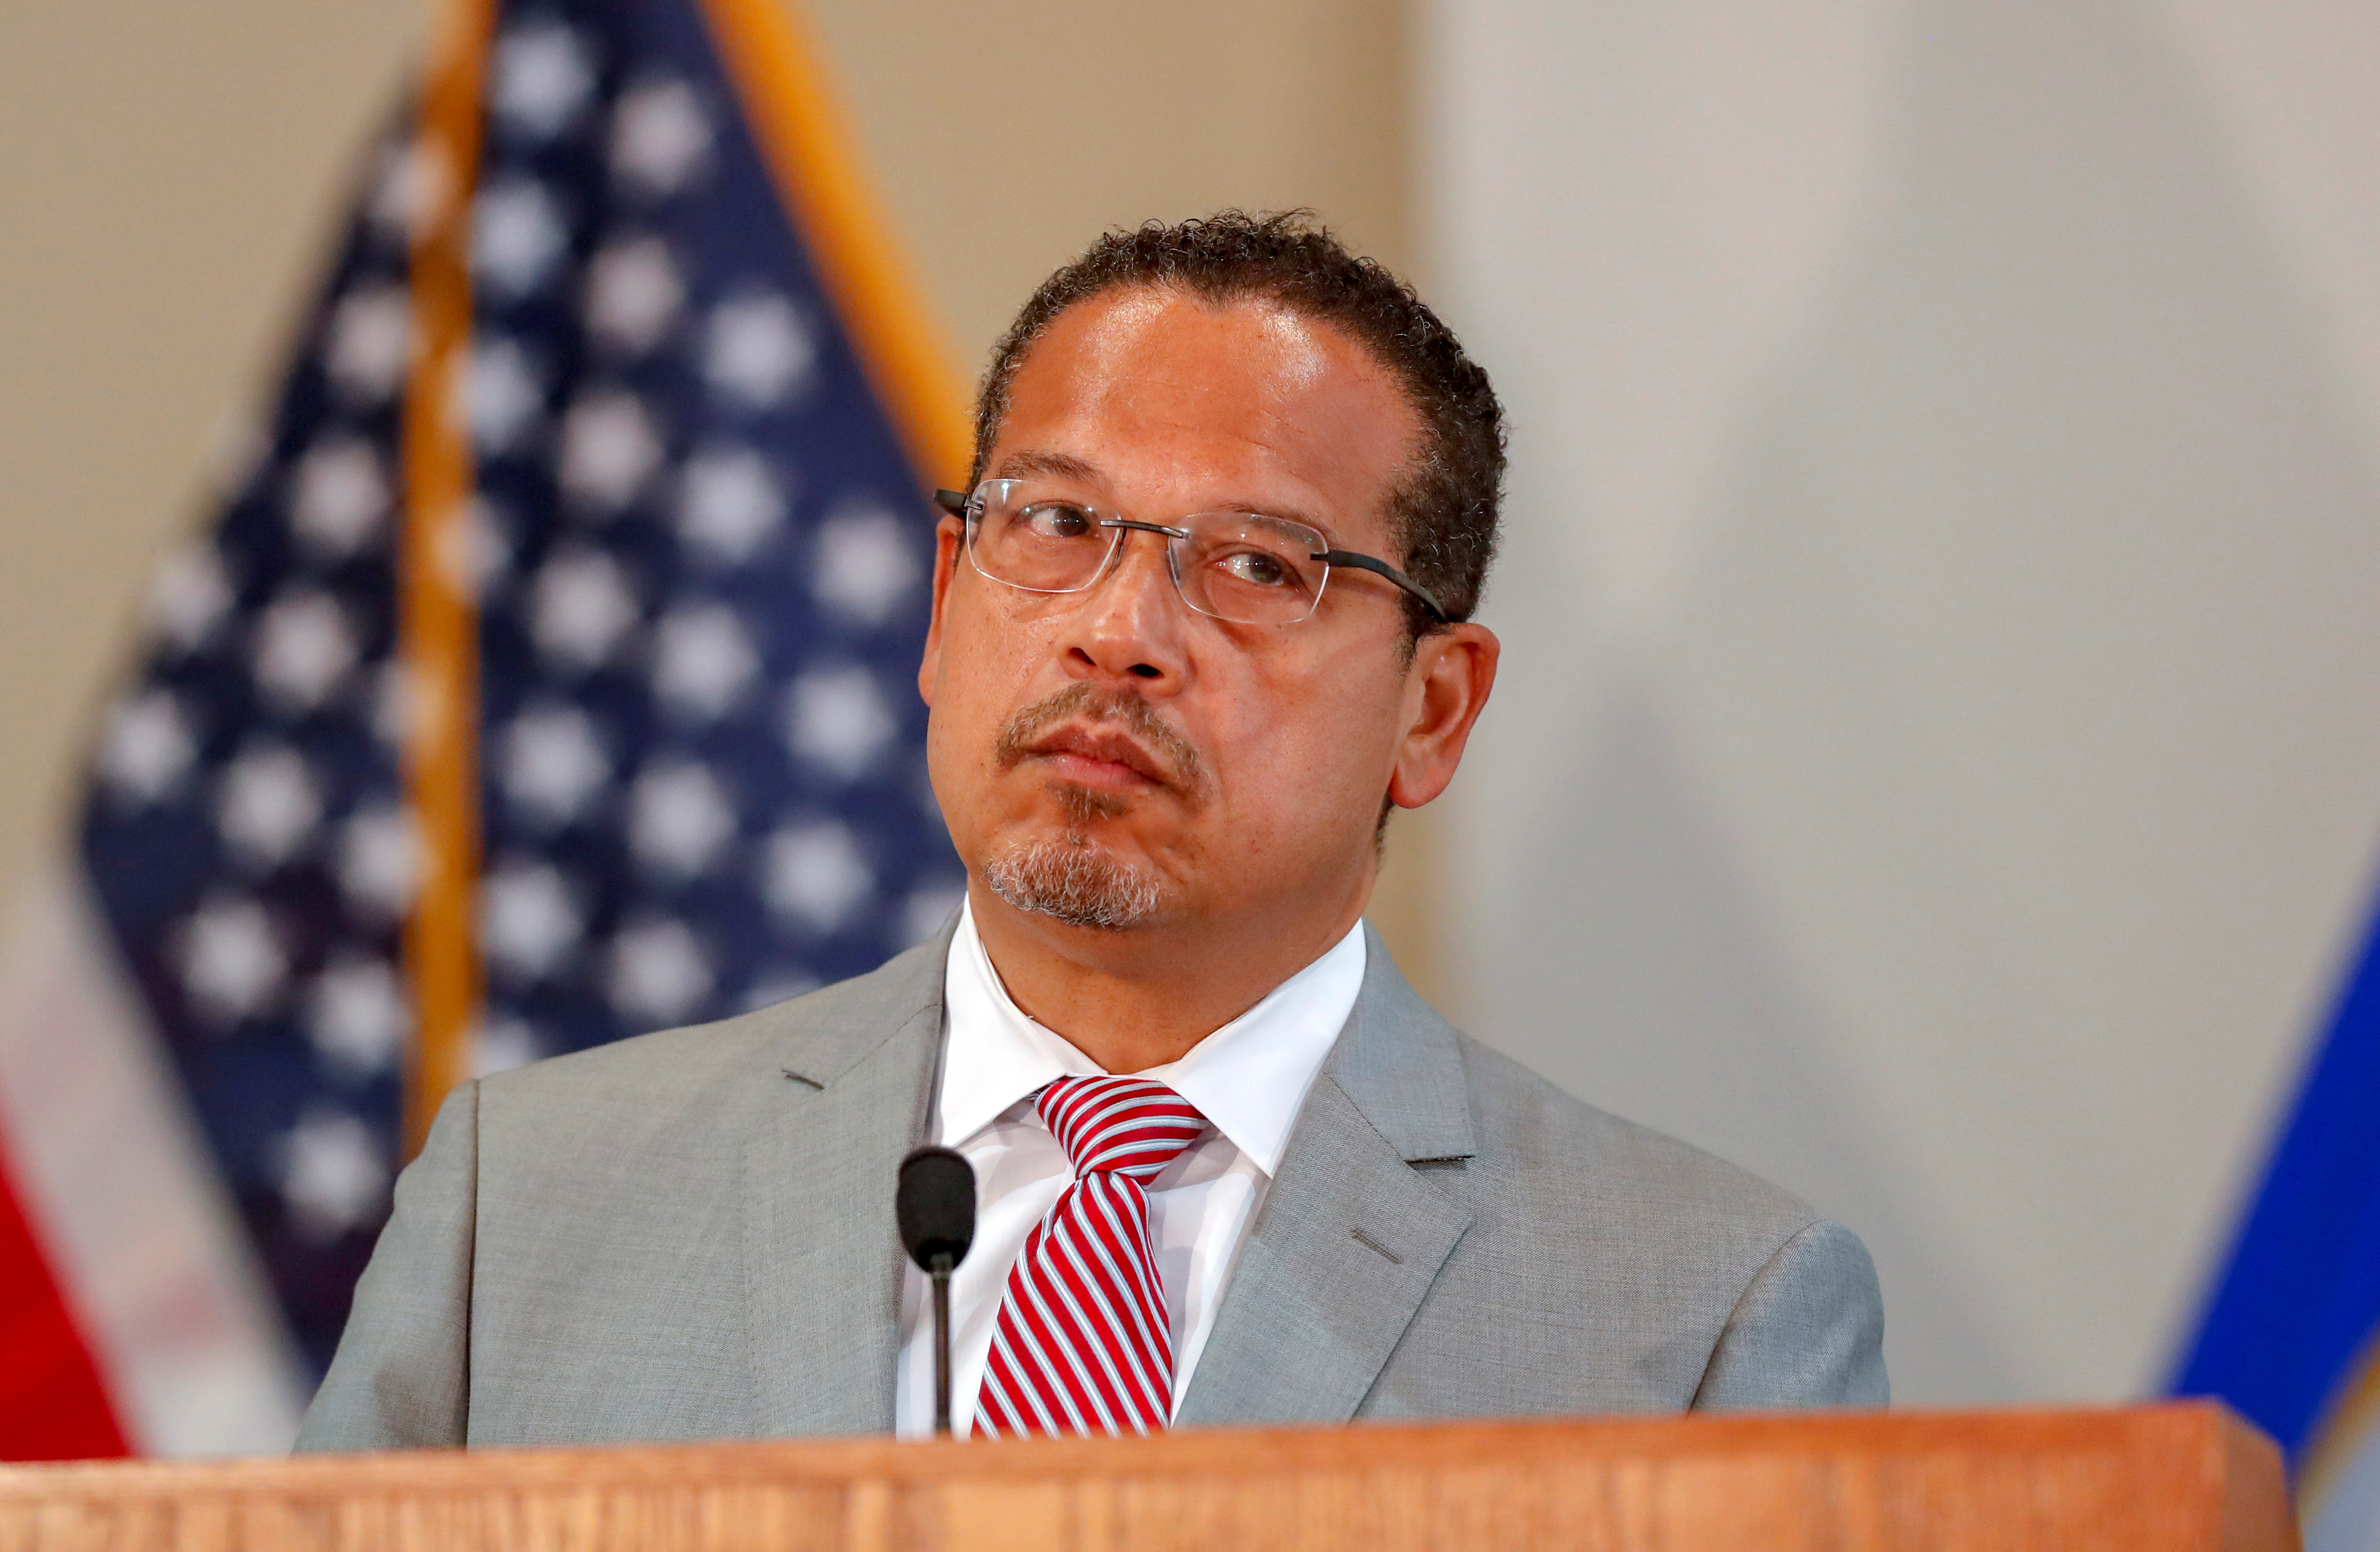 Minnesota Attorney General Ellison announces charges against former police officers involved in Floyd death